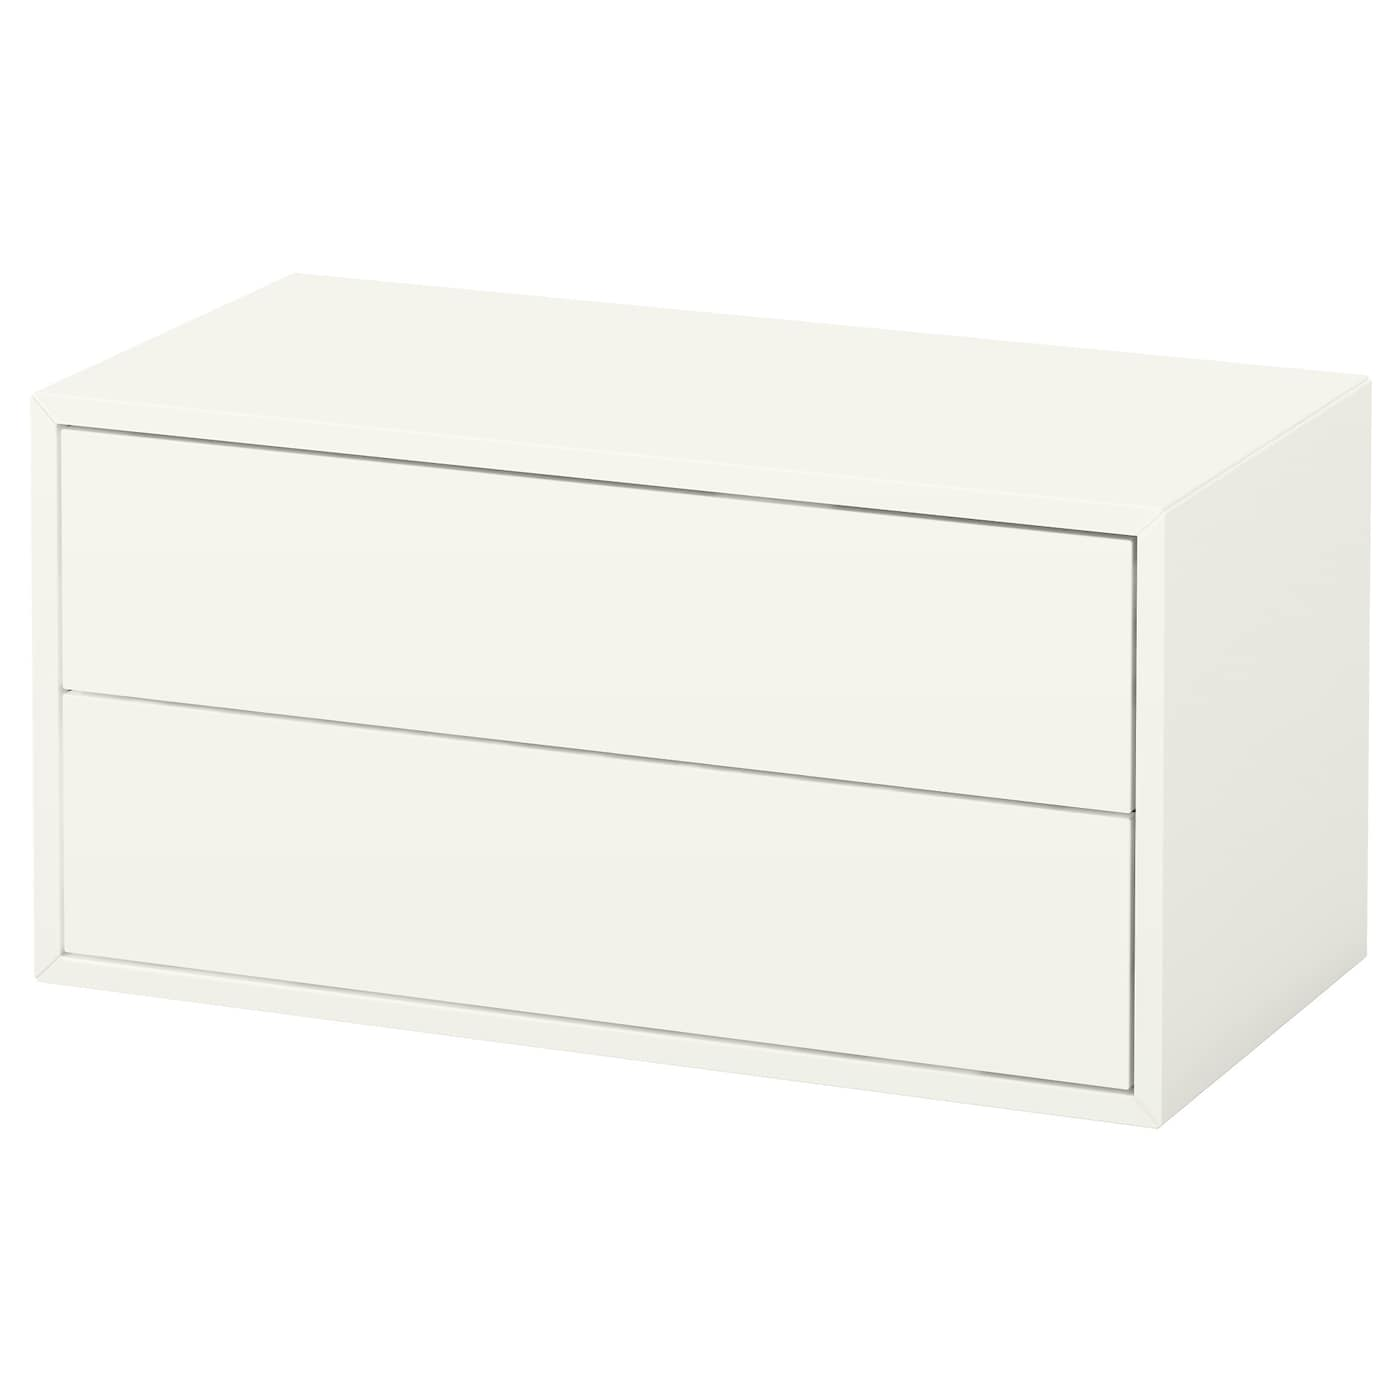 IKEA EKET cabinet with 2 drawers